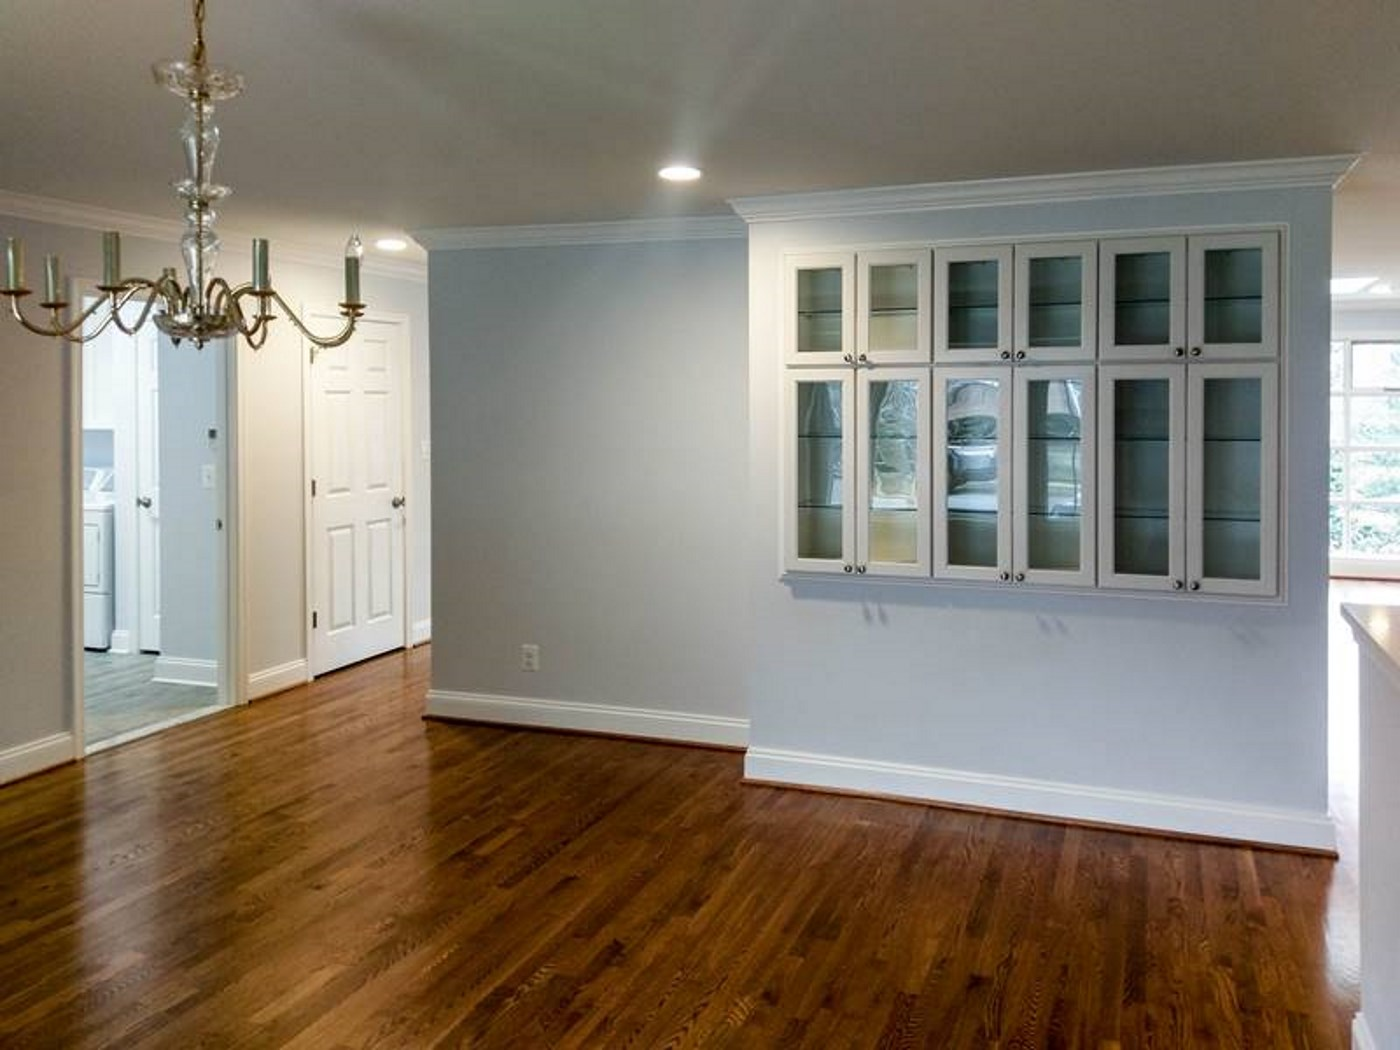 Top-Rated Home Remodeling Contractor in Vienna, Virginia, Elite Contractors Announces New Page for Home & Kitchen Remodel Information